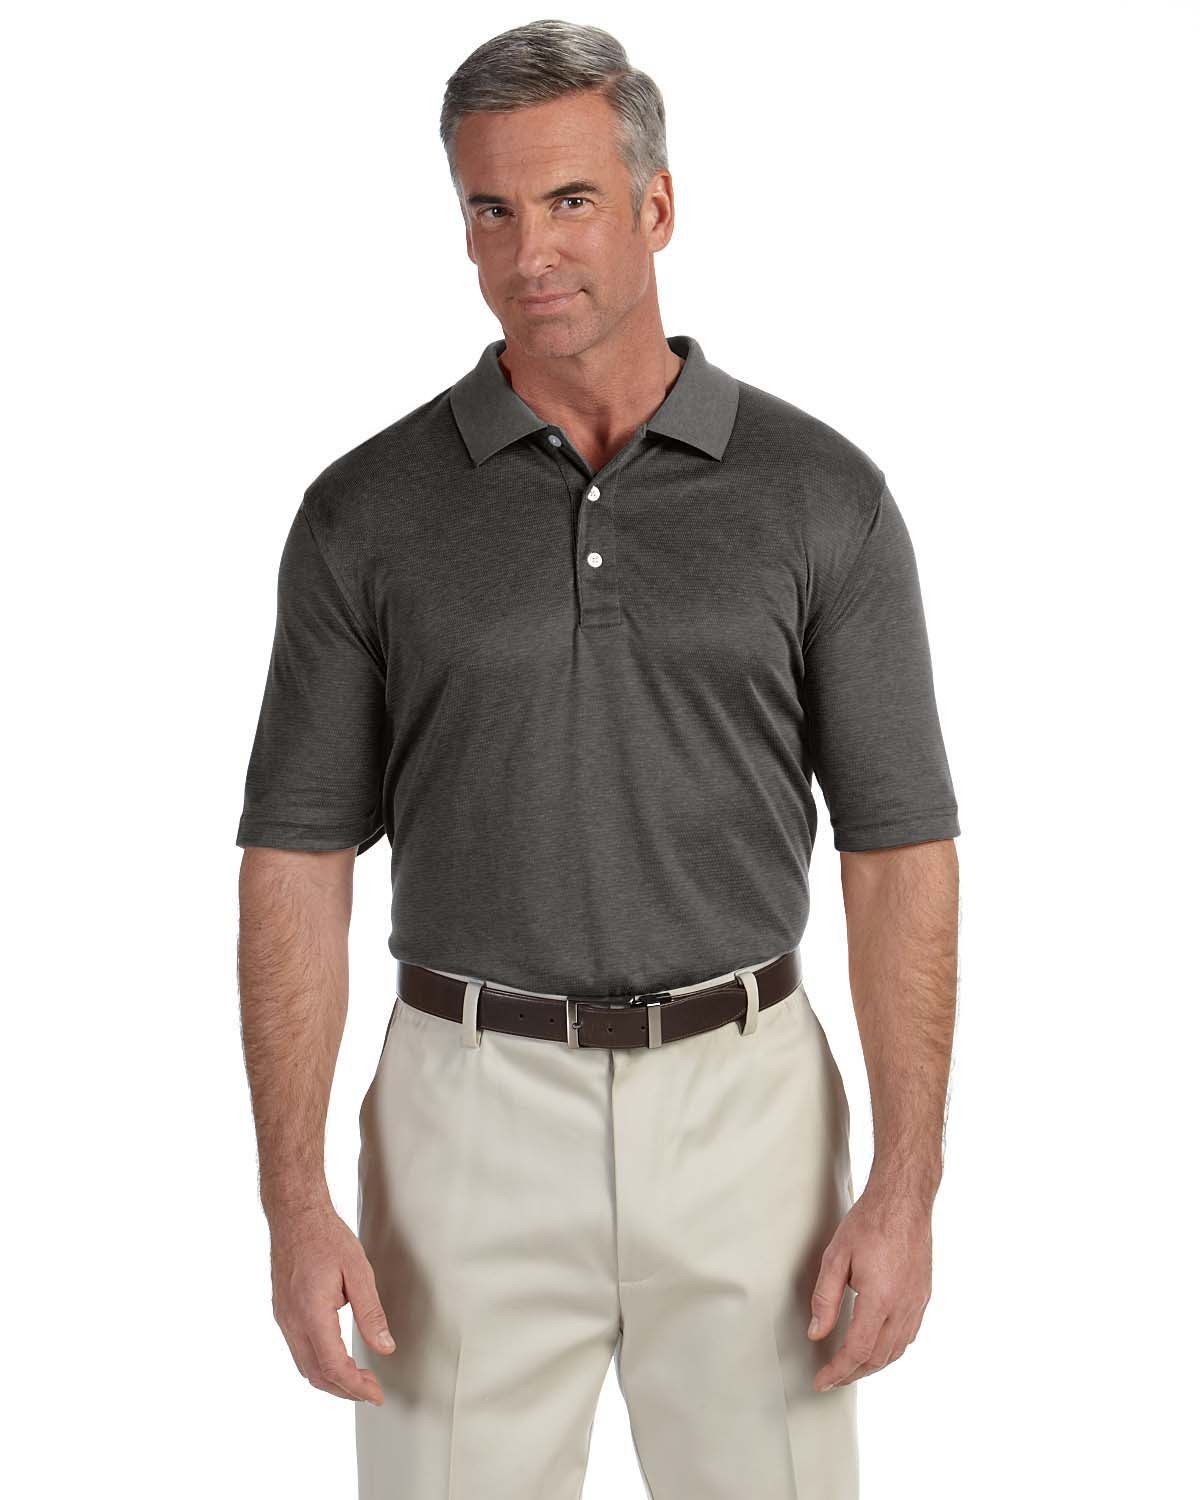 Buy hanes 4800 4 oz cool dri polo online lowest prices for Cool dri polo shirts